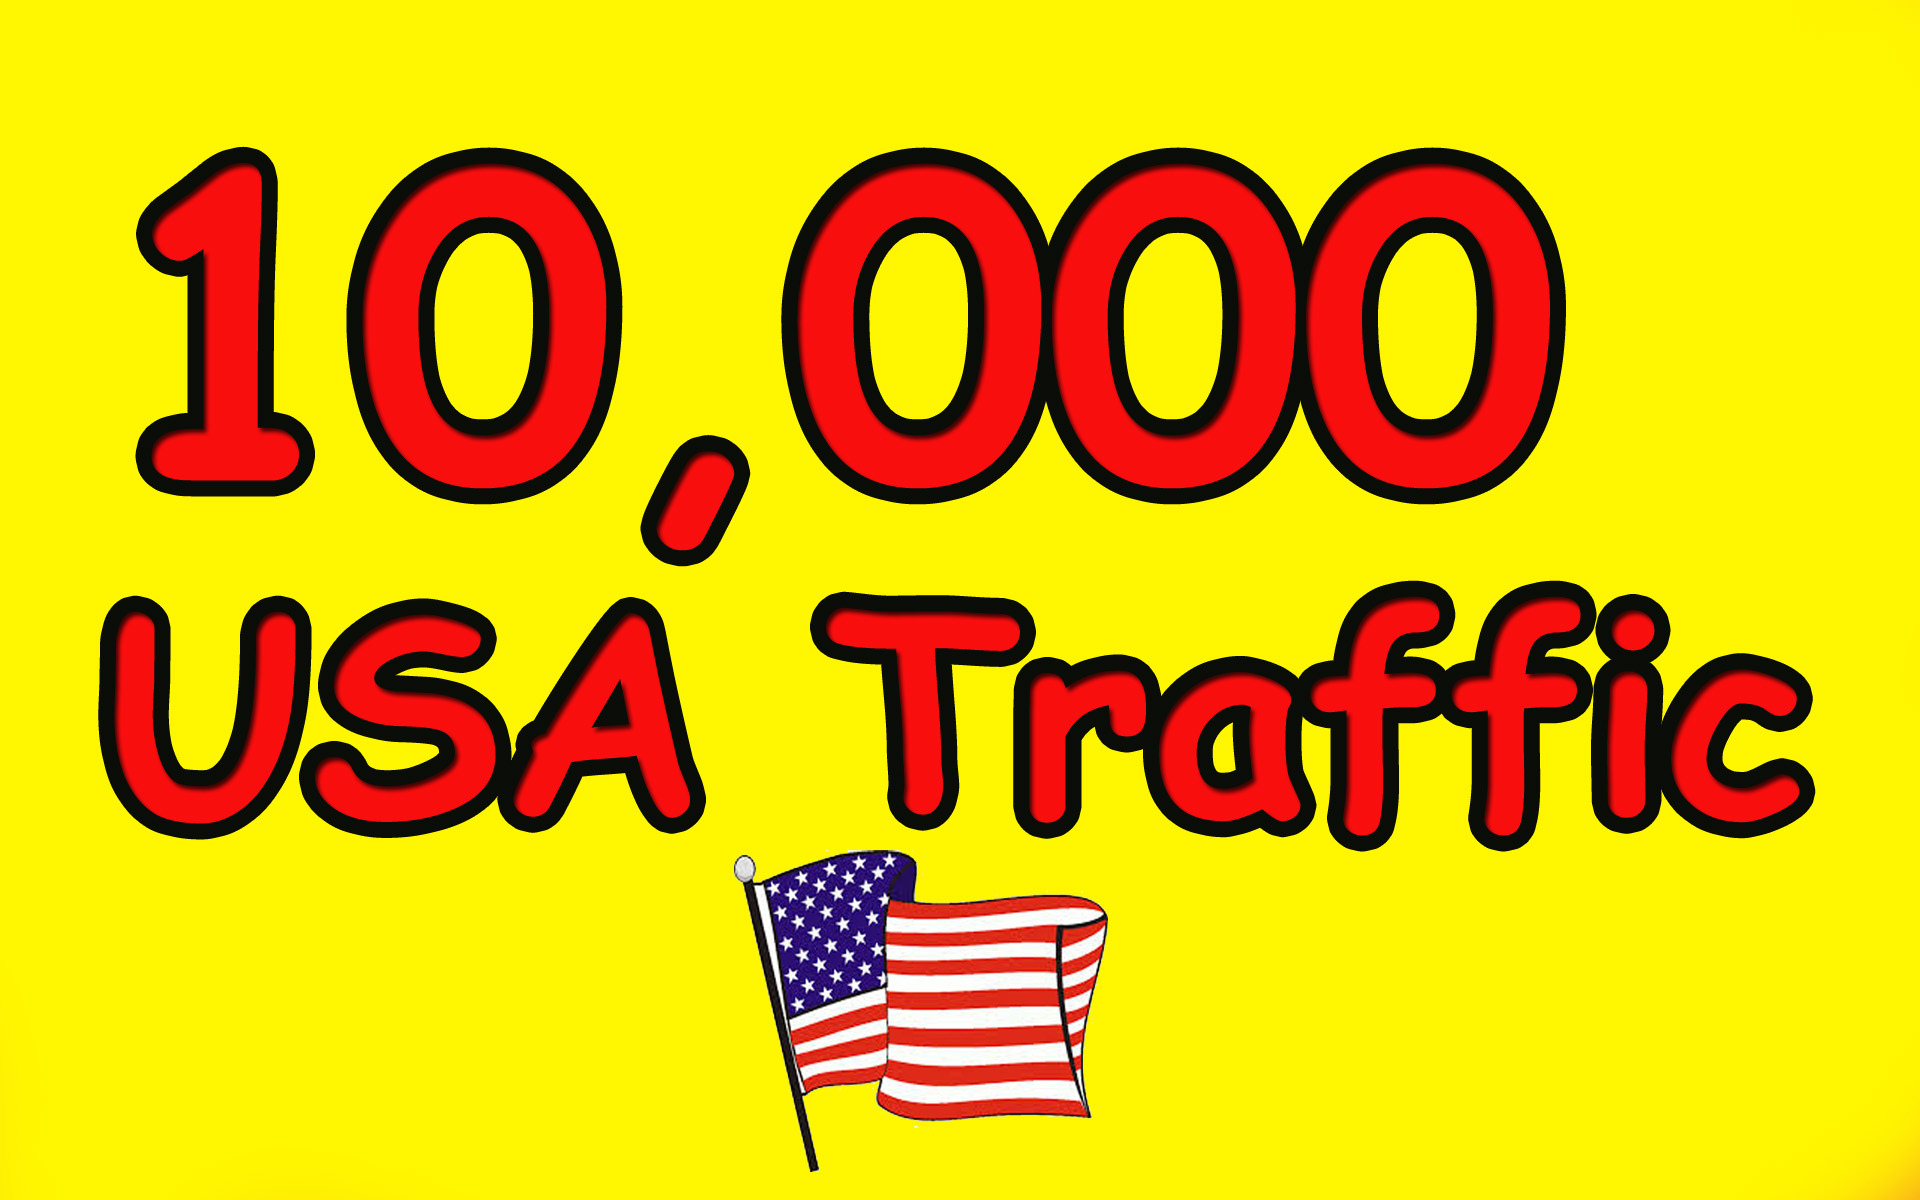 Give you 10,000 Guaranteed USA Visitors to your site with proofs